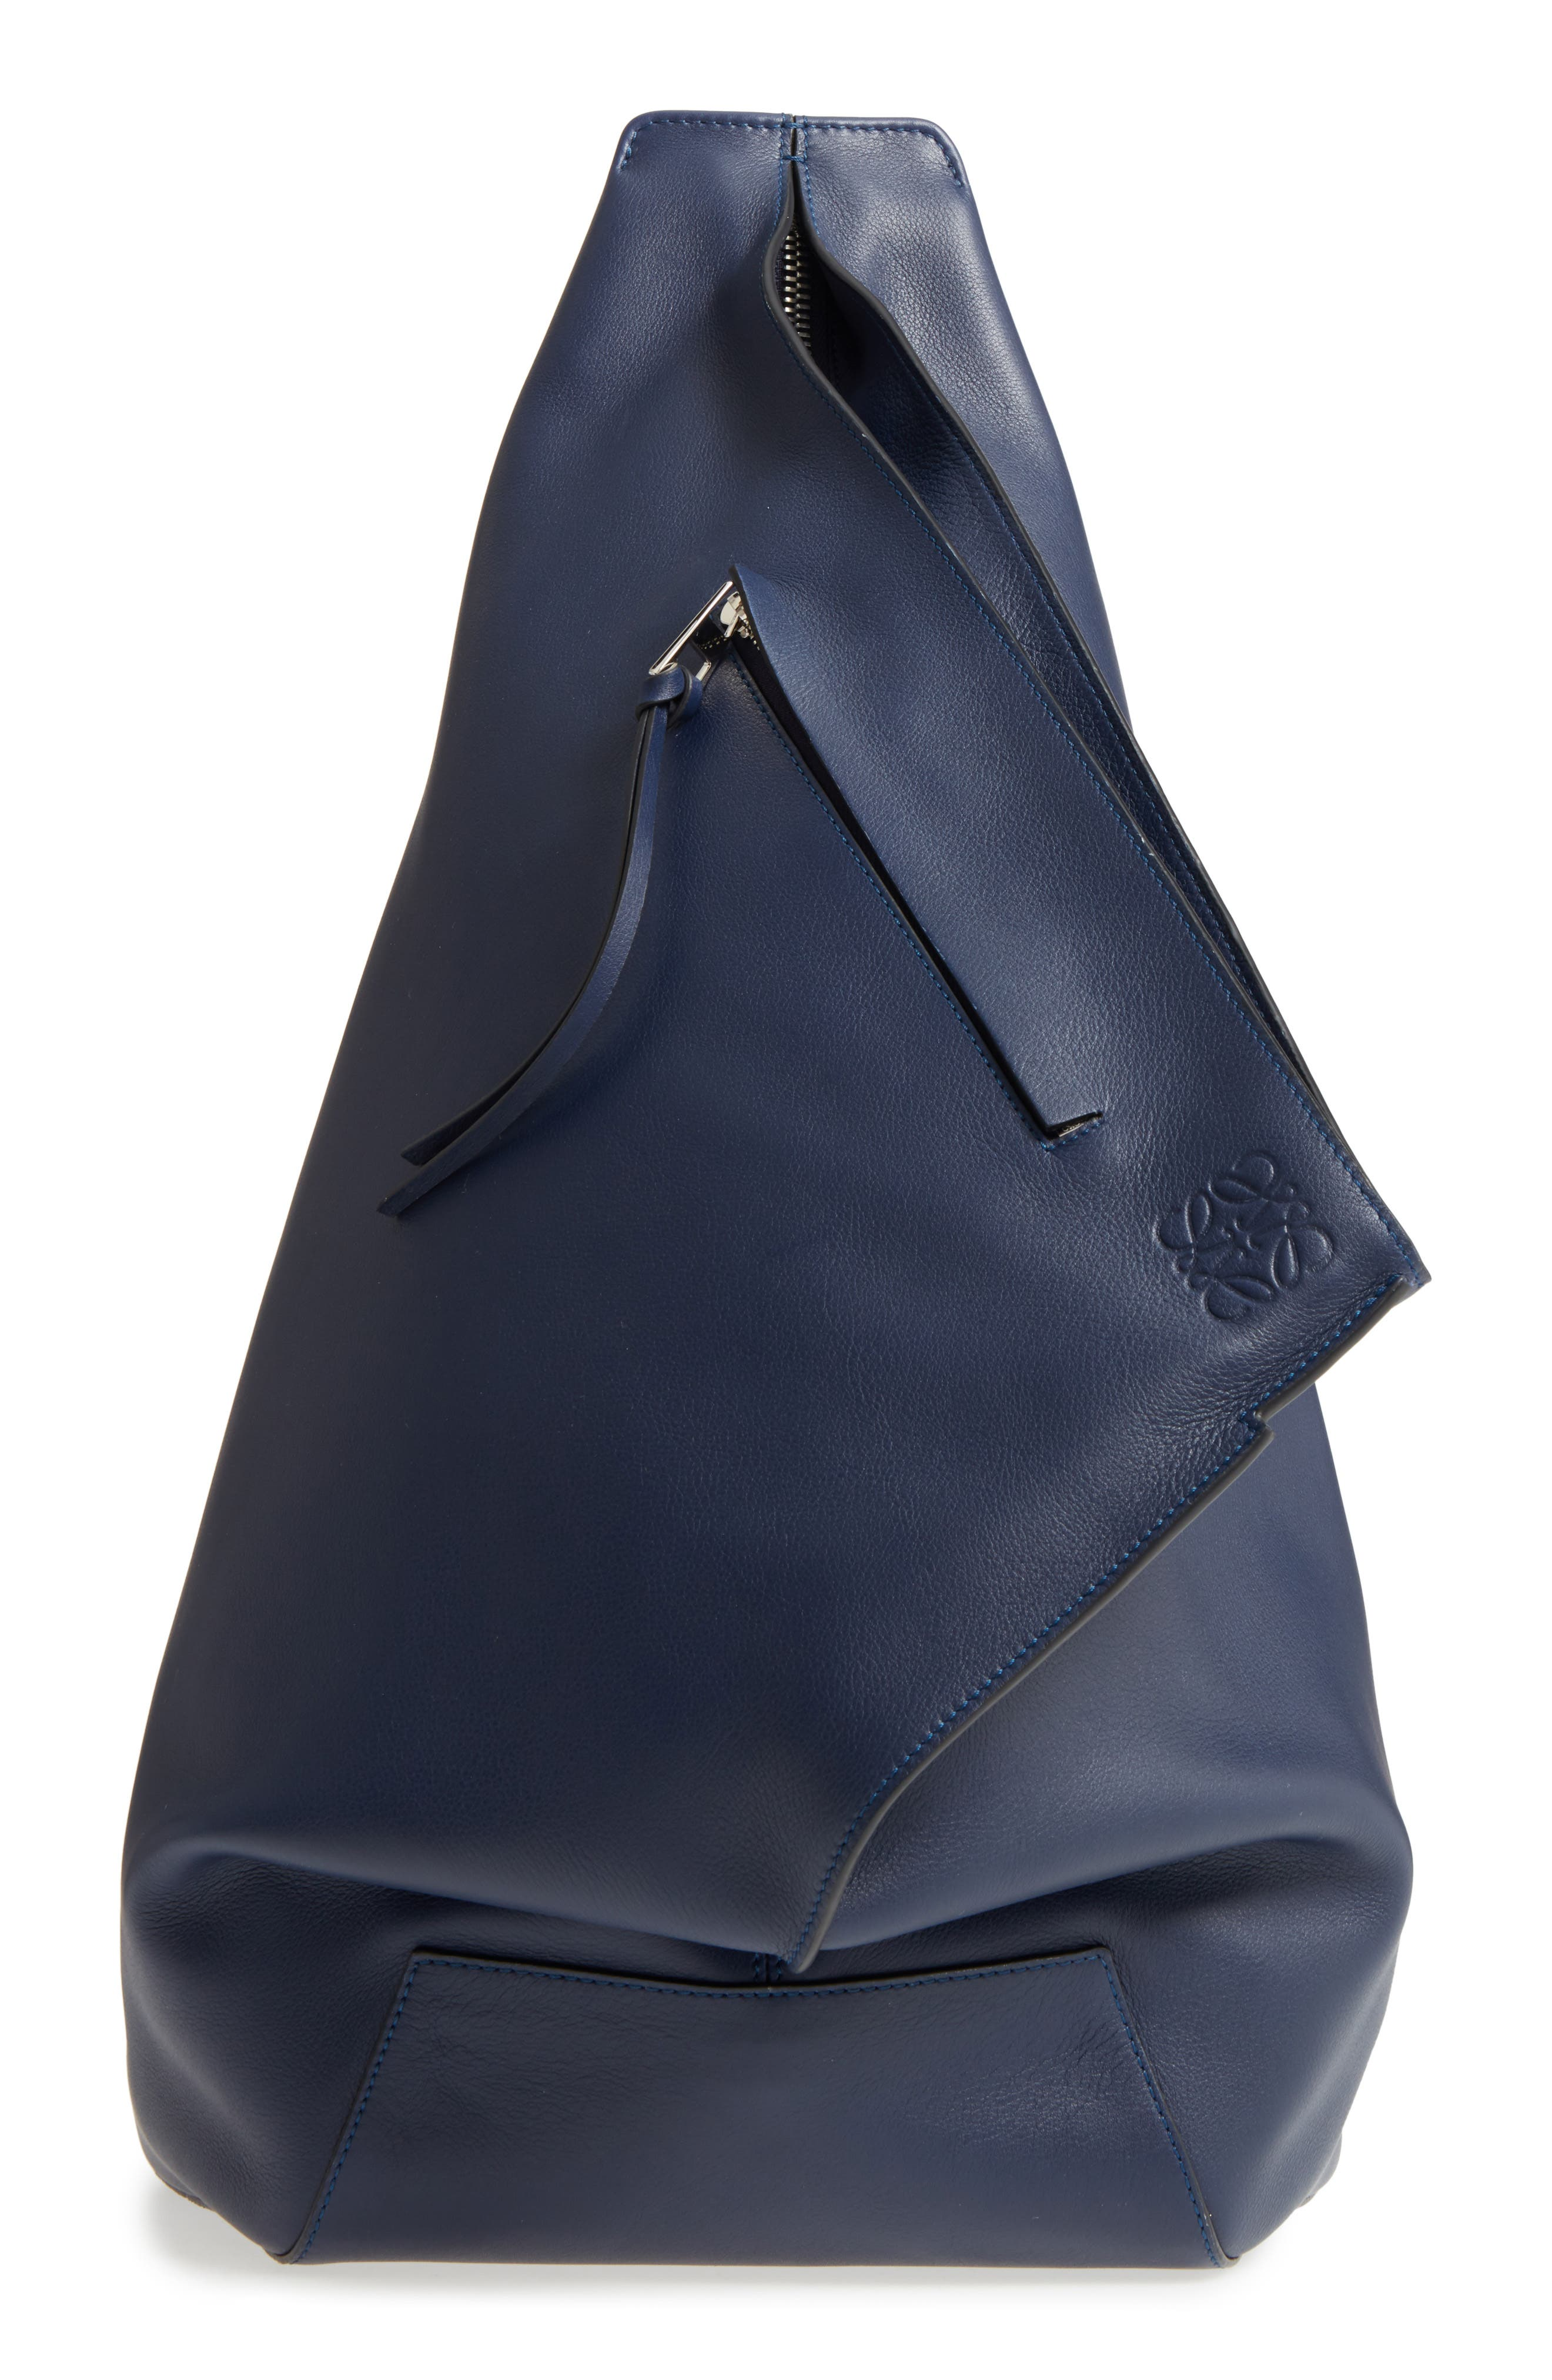 Anton Leather Sling Pack,                         Main,                         color, Navy Blue